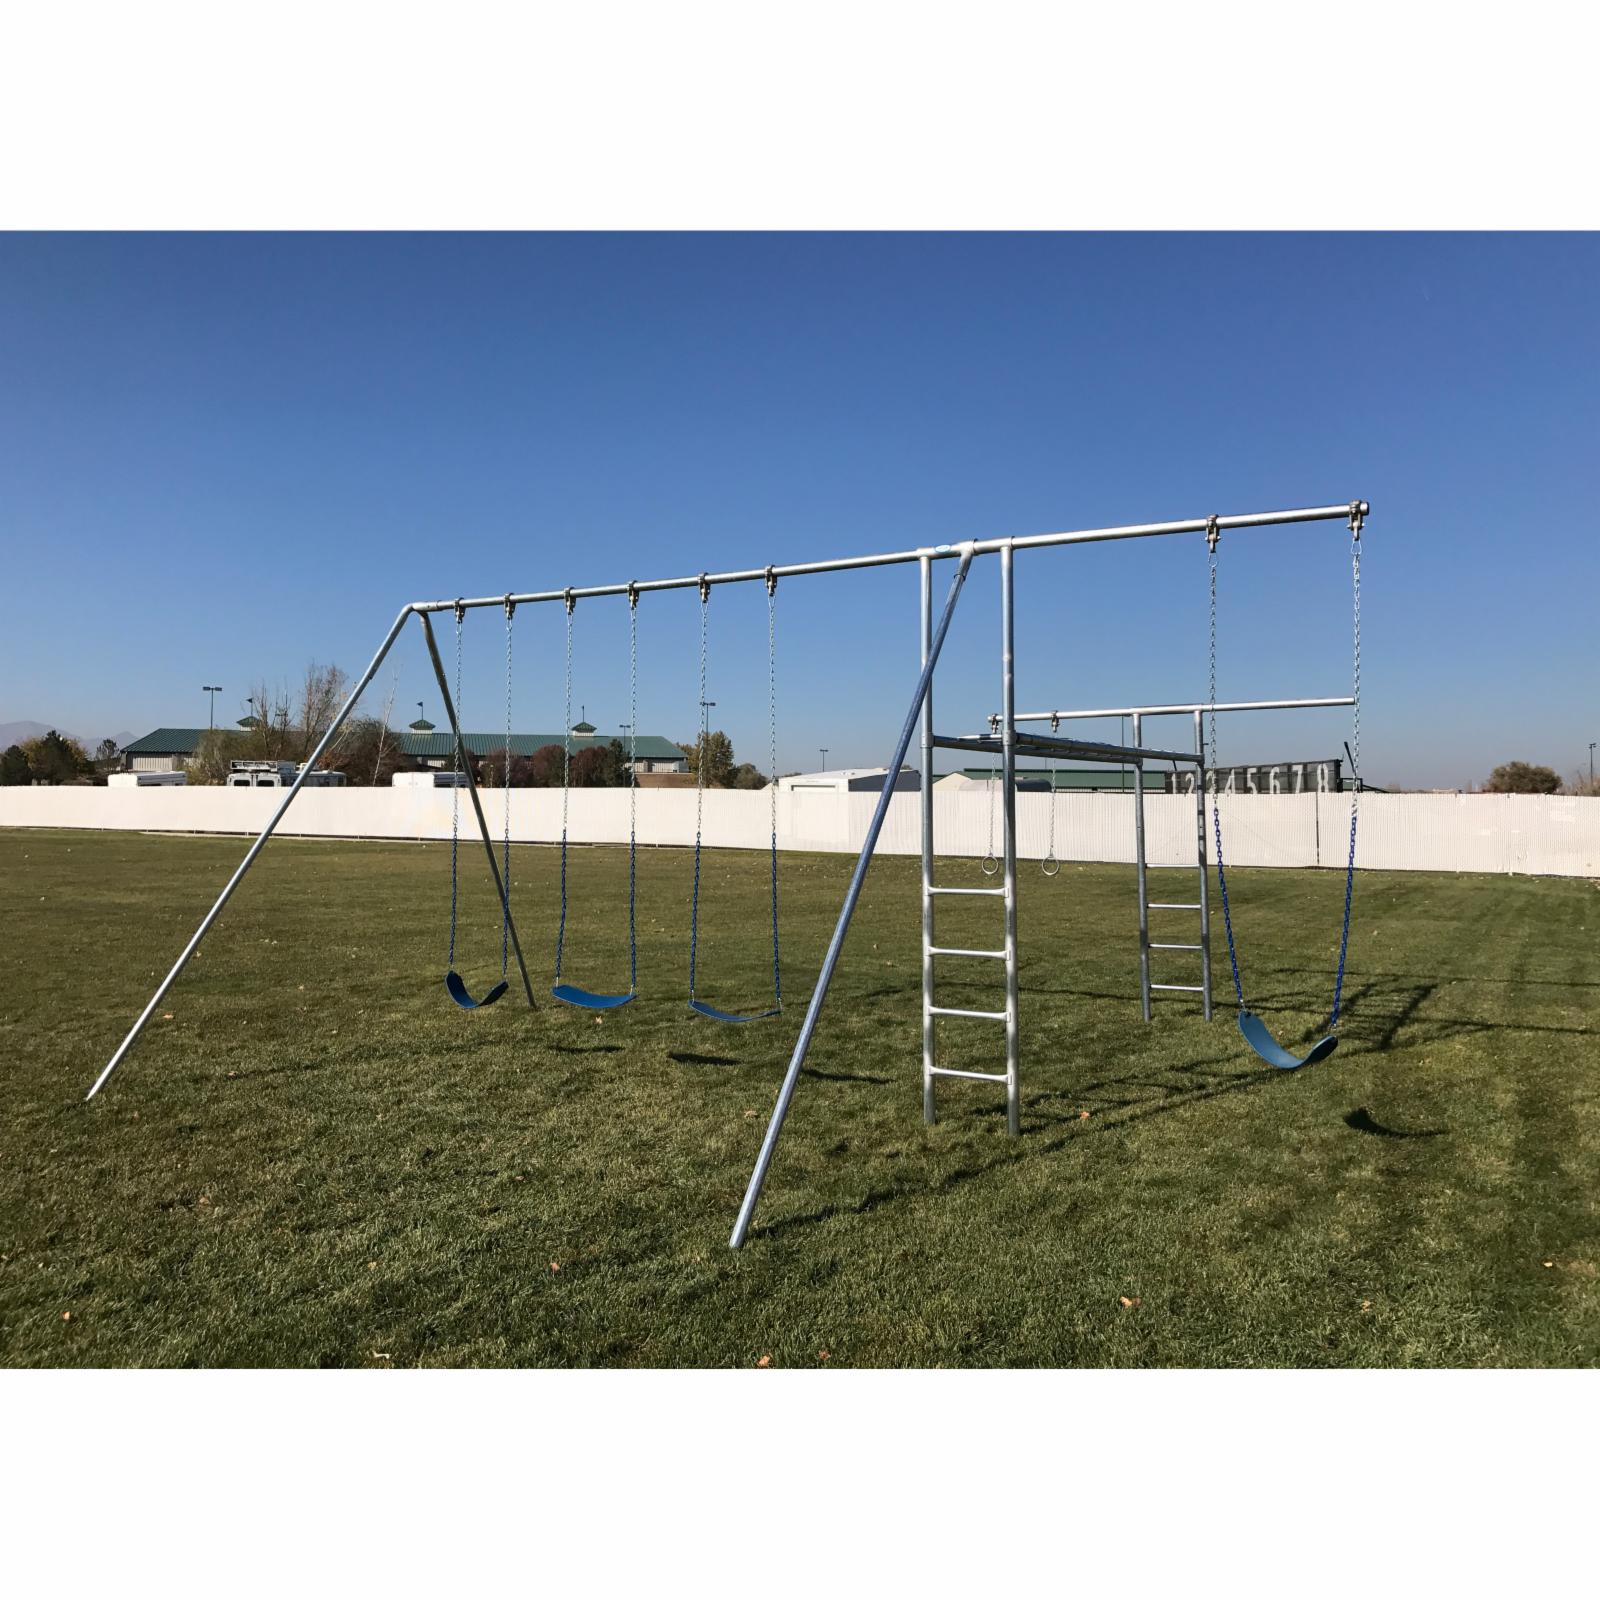 Used playground equipment Swing Sets Playsets